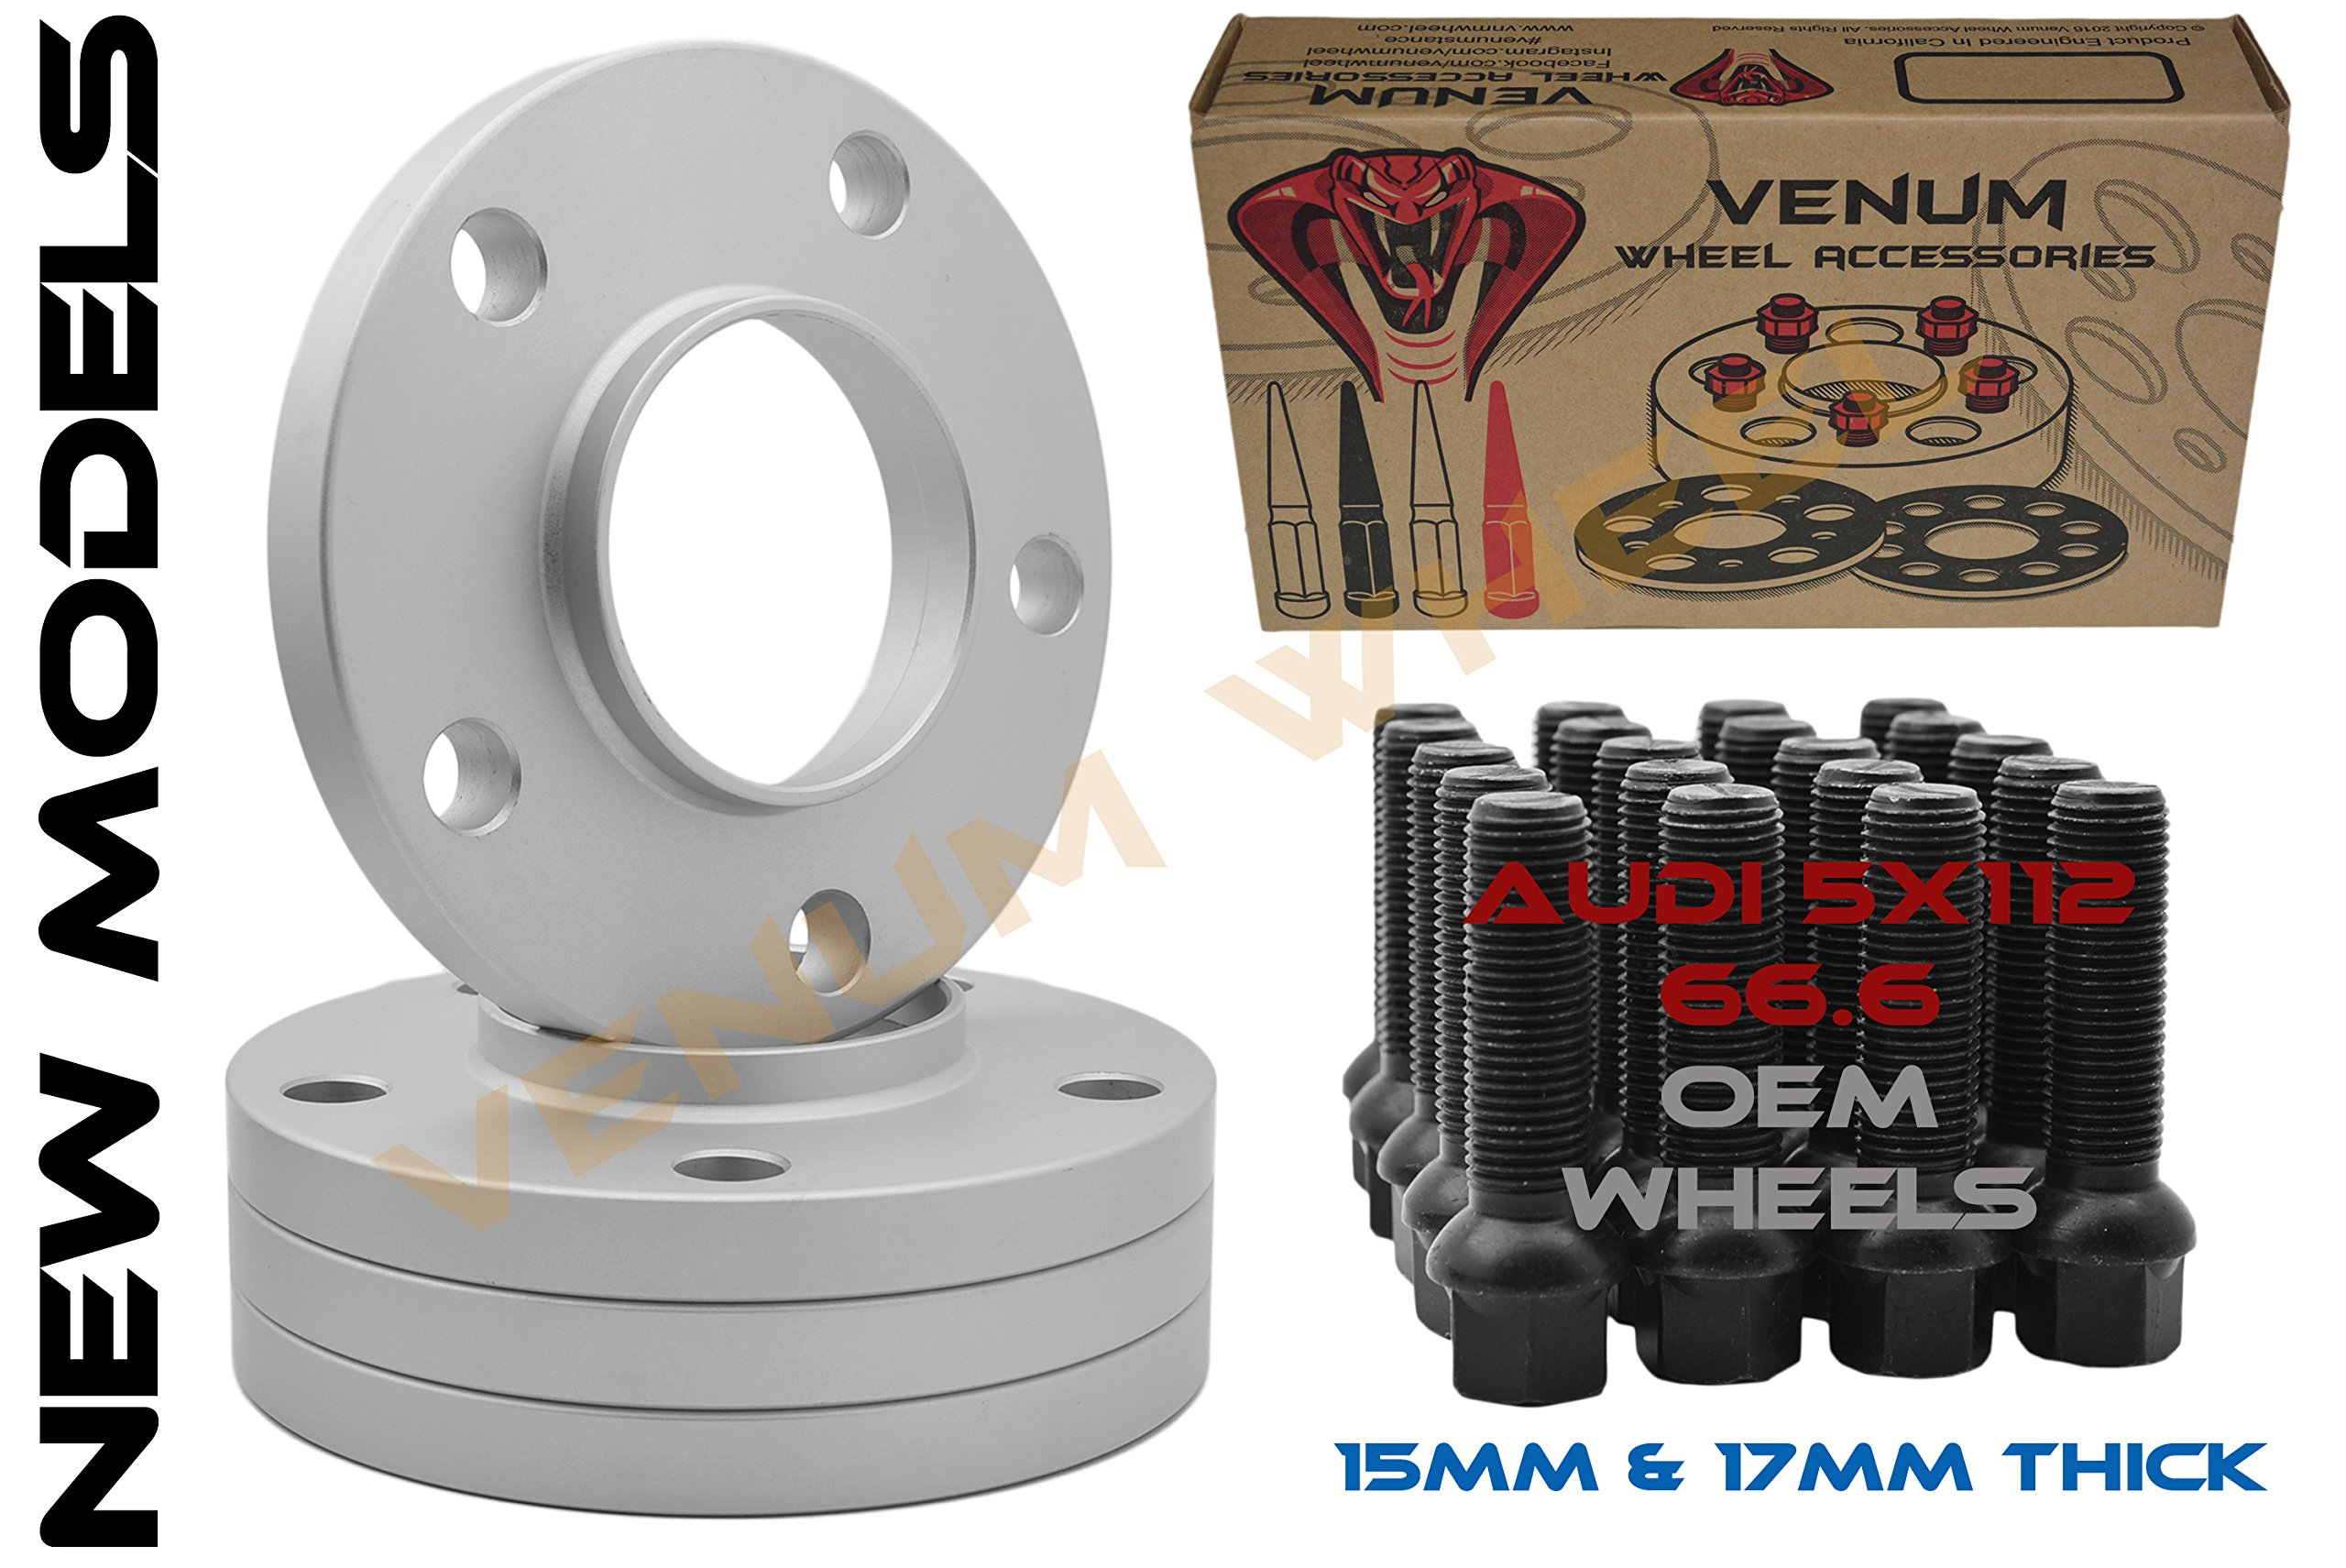 Audi Wheel Spacers - 15mm & 17mm Hubcentric New Model 5x112 66.56 Hub | 2009-2018 A4 A5 A6 A7 A8 All Road S4 S5 S6 S7 RS5 RS7 Q5 SQ5 W/ OEM Wheels